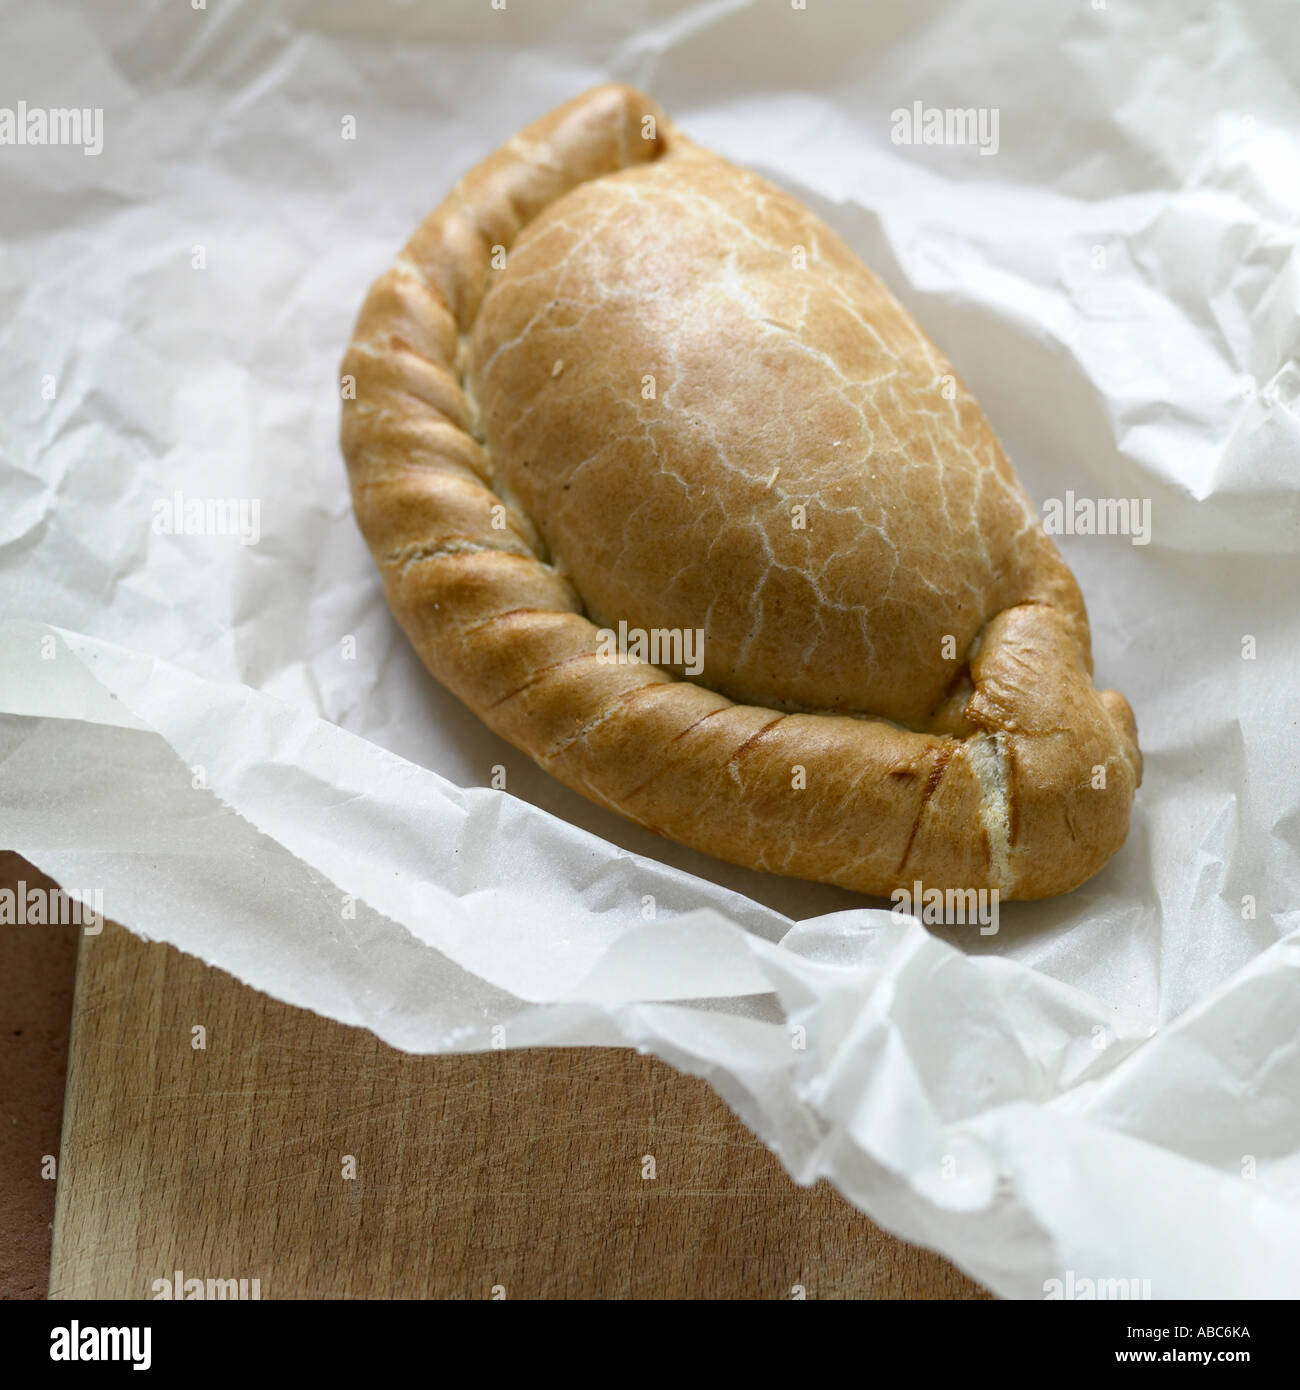 Cornish pastie - Stock Image